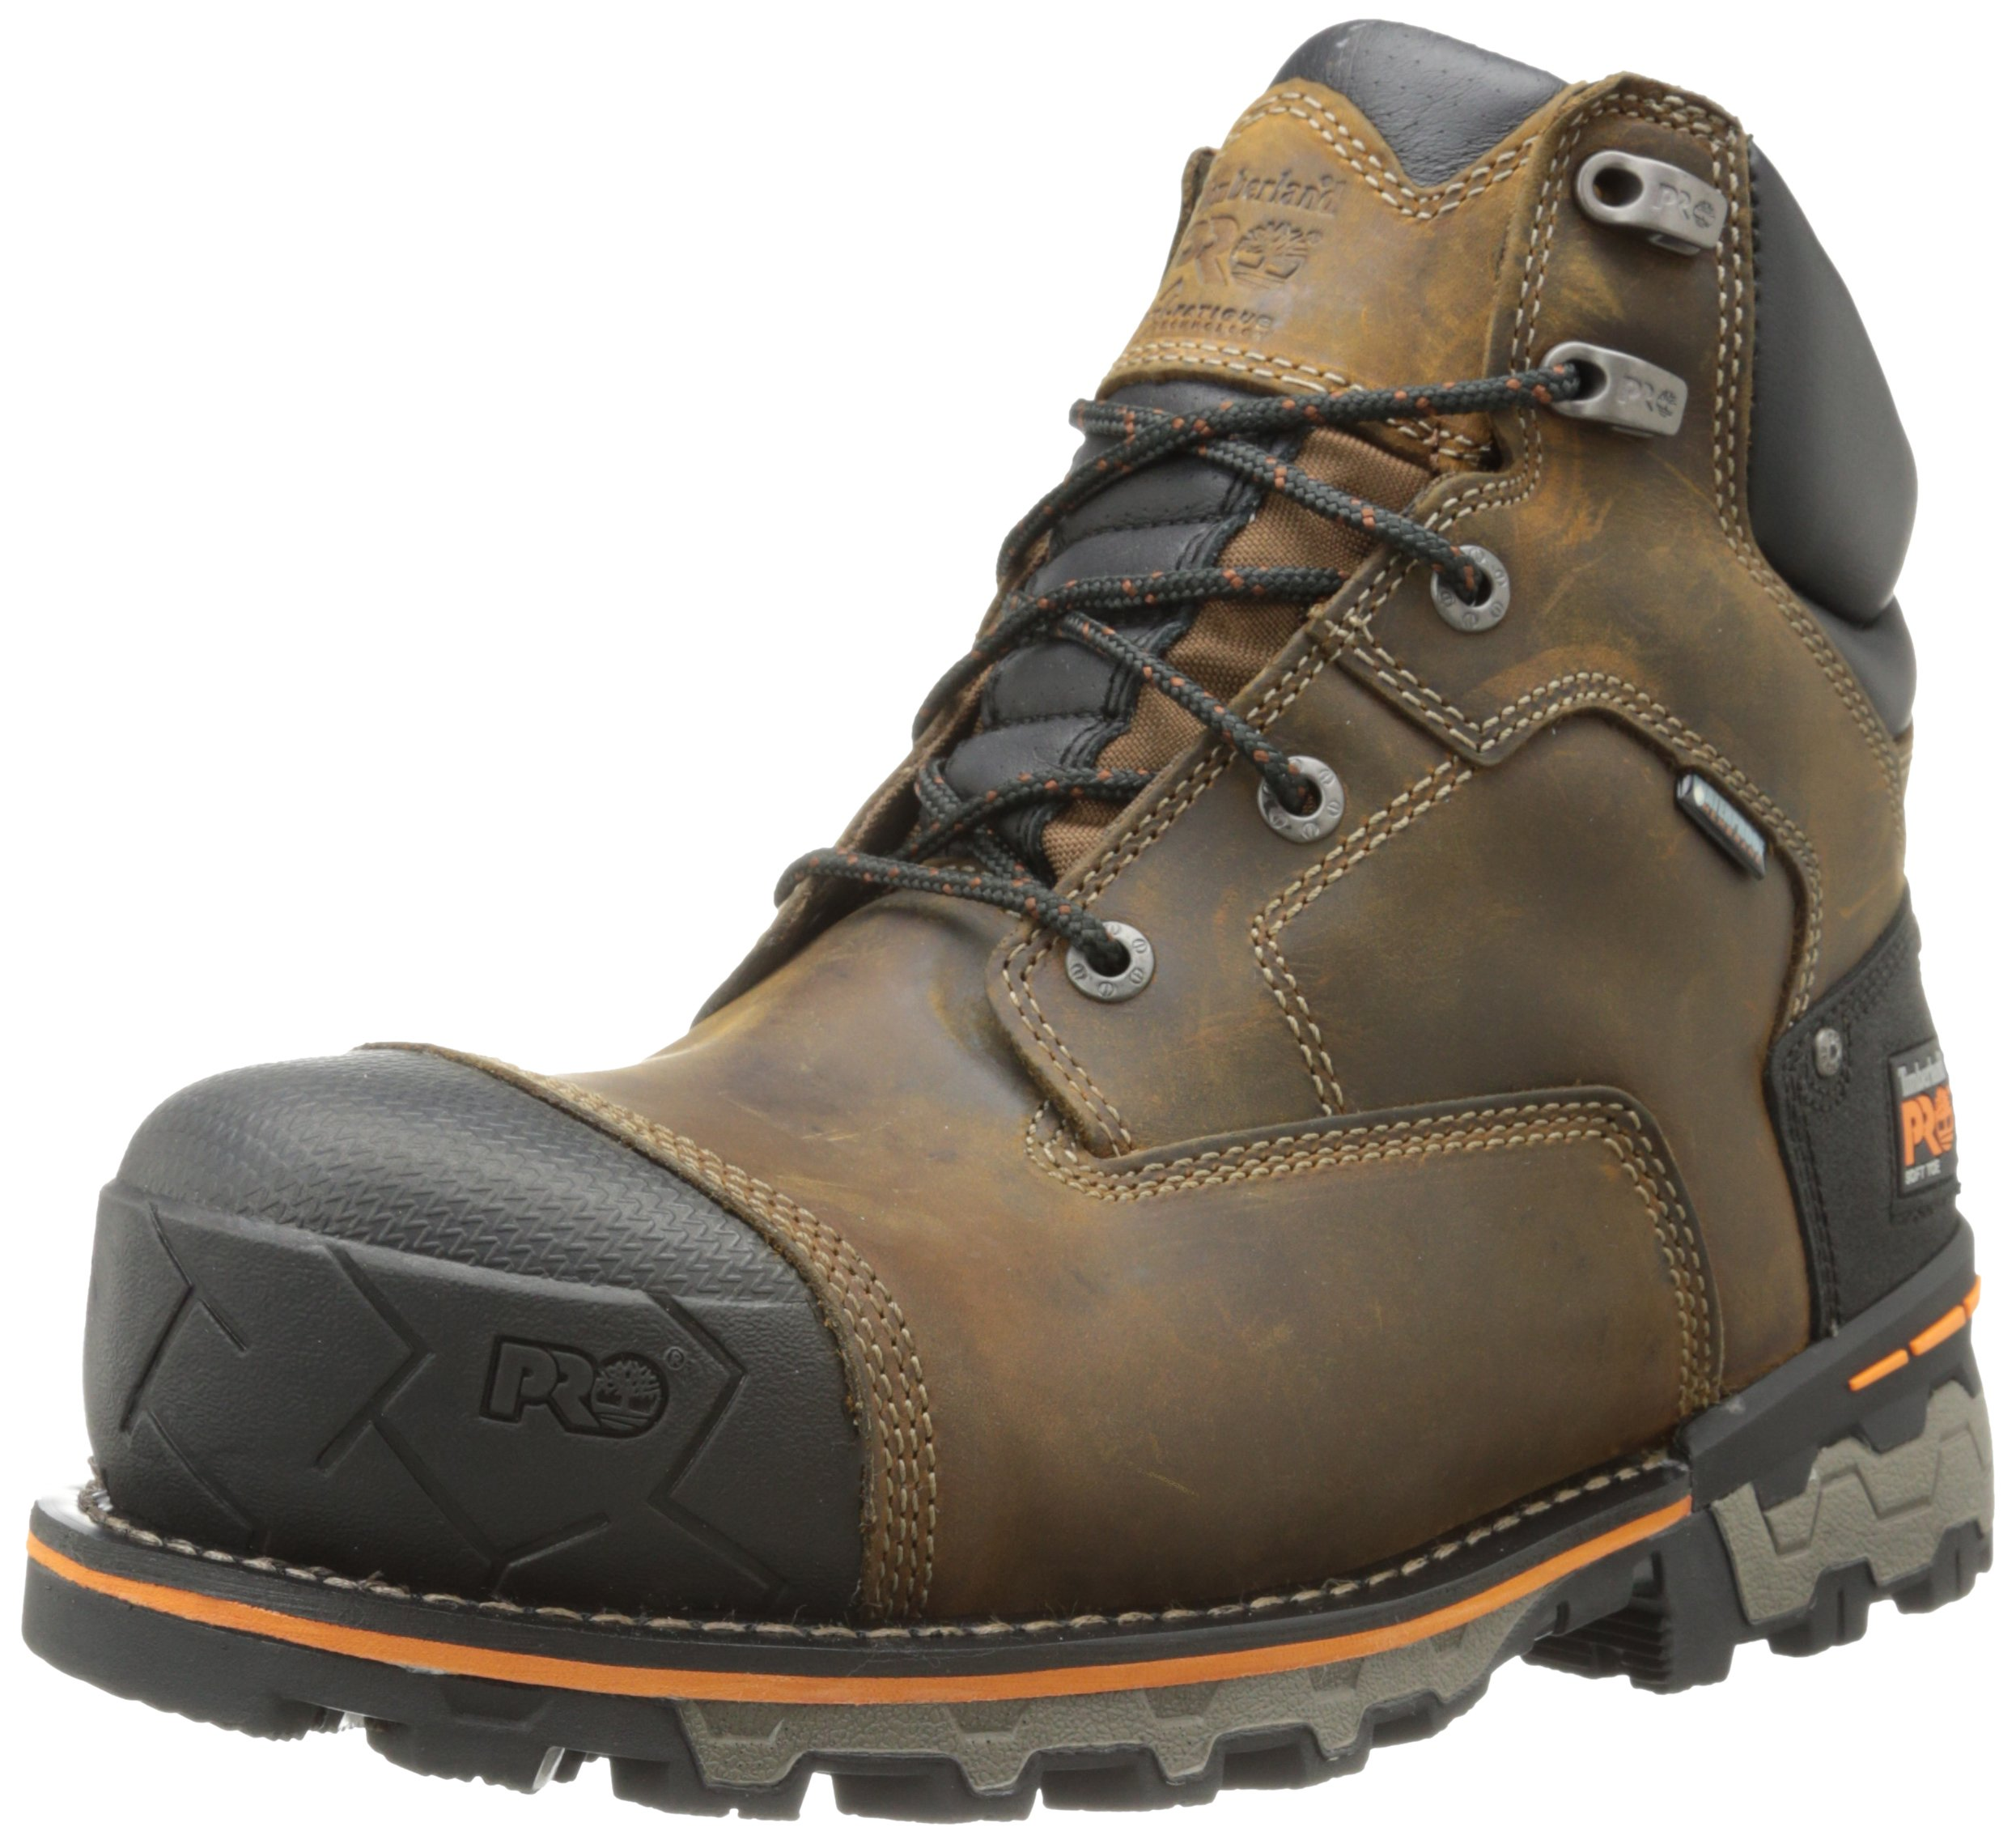 Timberland PRO Men's 6 Inch Boondock Soft Toe Waterproof Industrial Work Boot,Brown Oiled Distressed Leather,10 M US